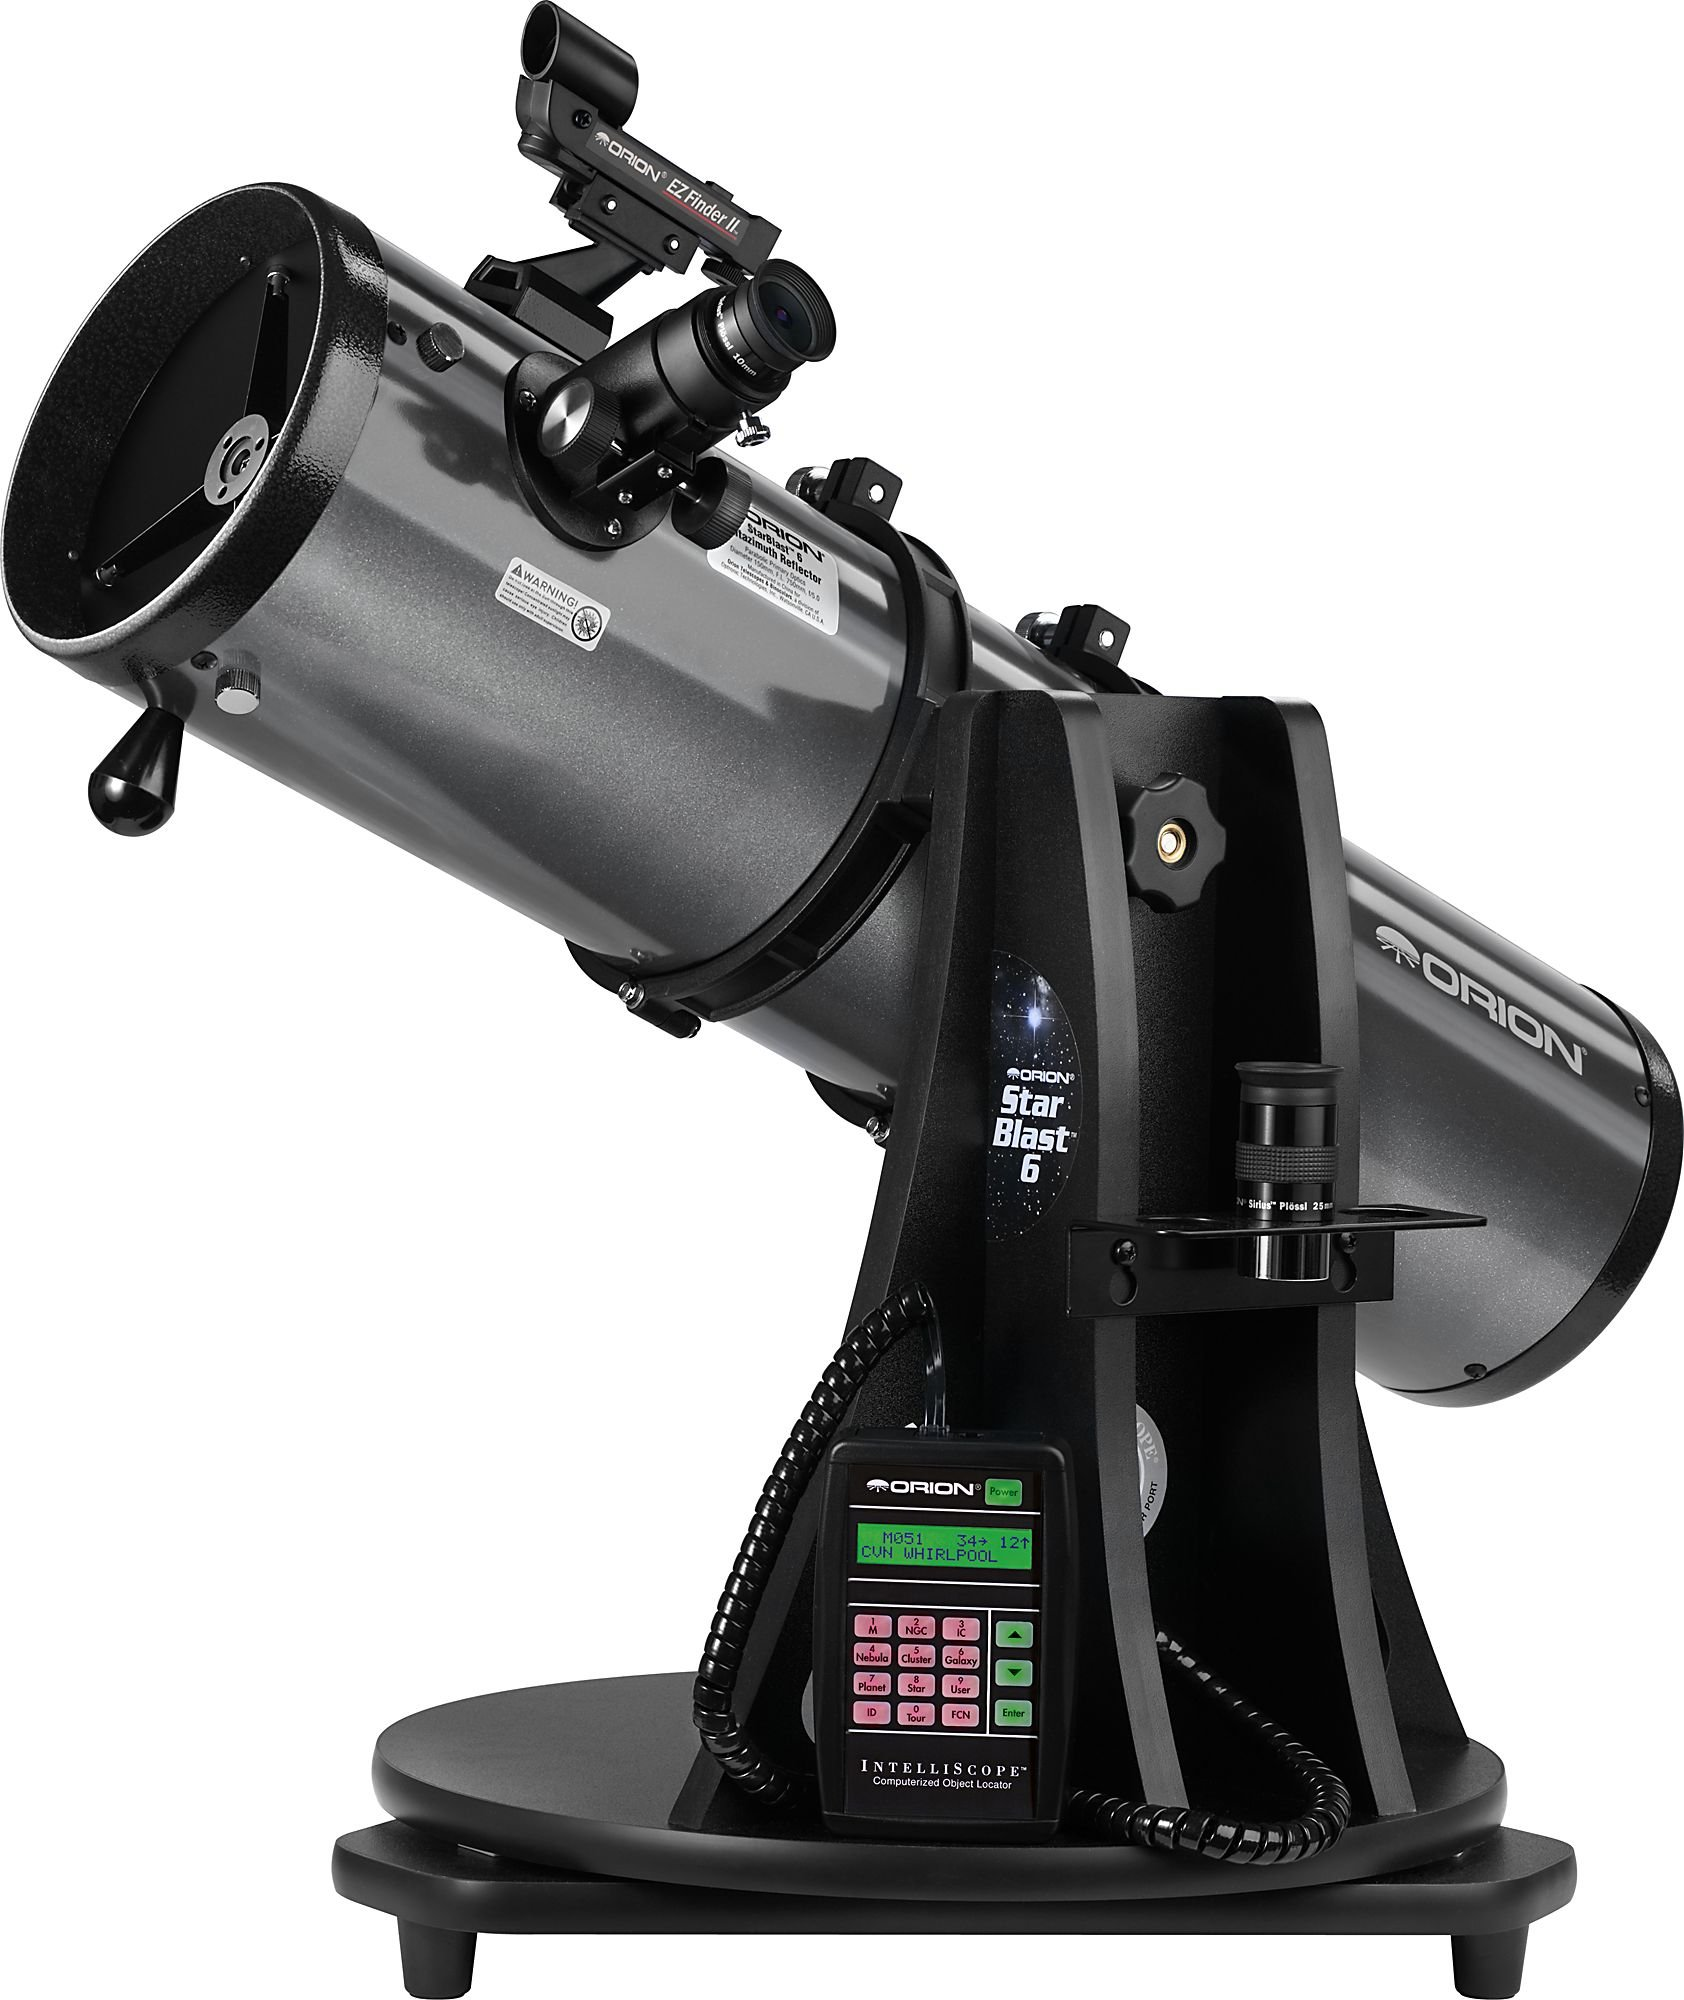 Orion 27191 StarBlast 6i IntelliScope Reflector Telescope Family Astronomy Set